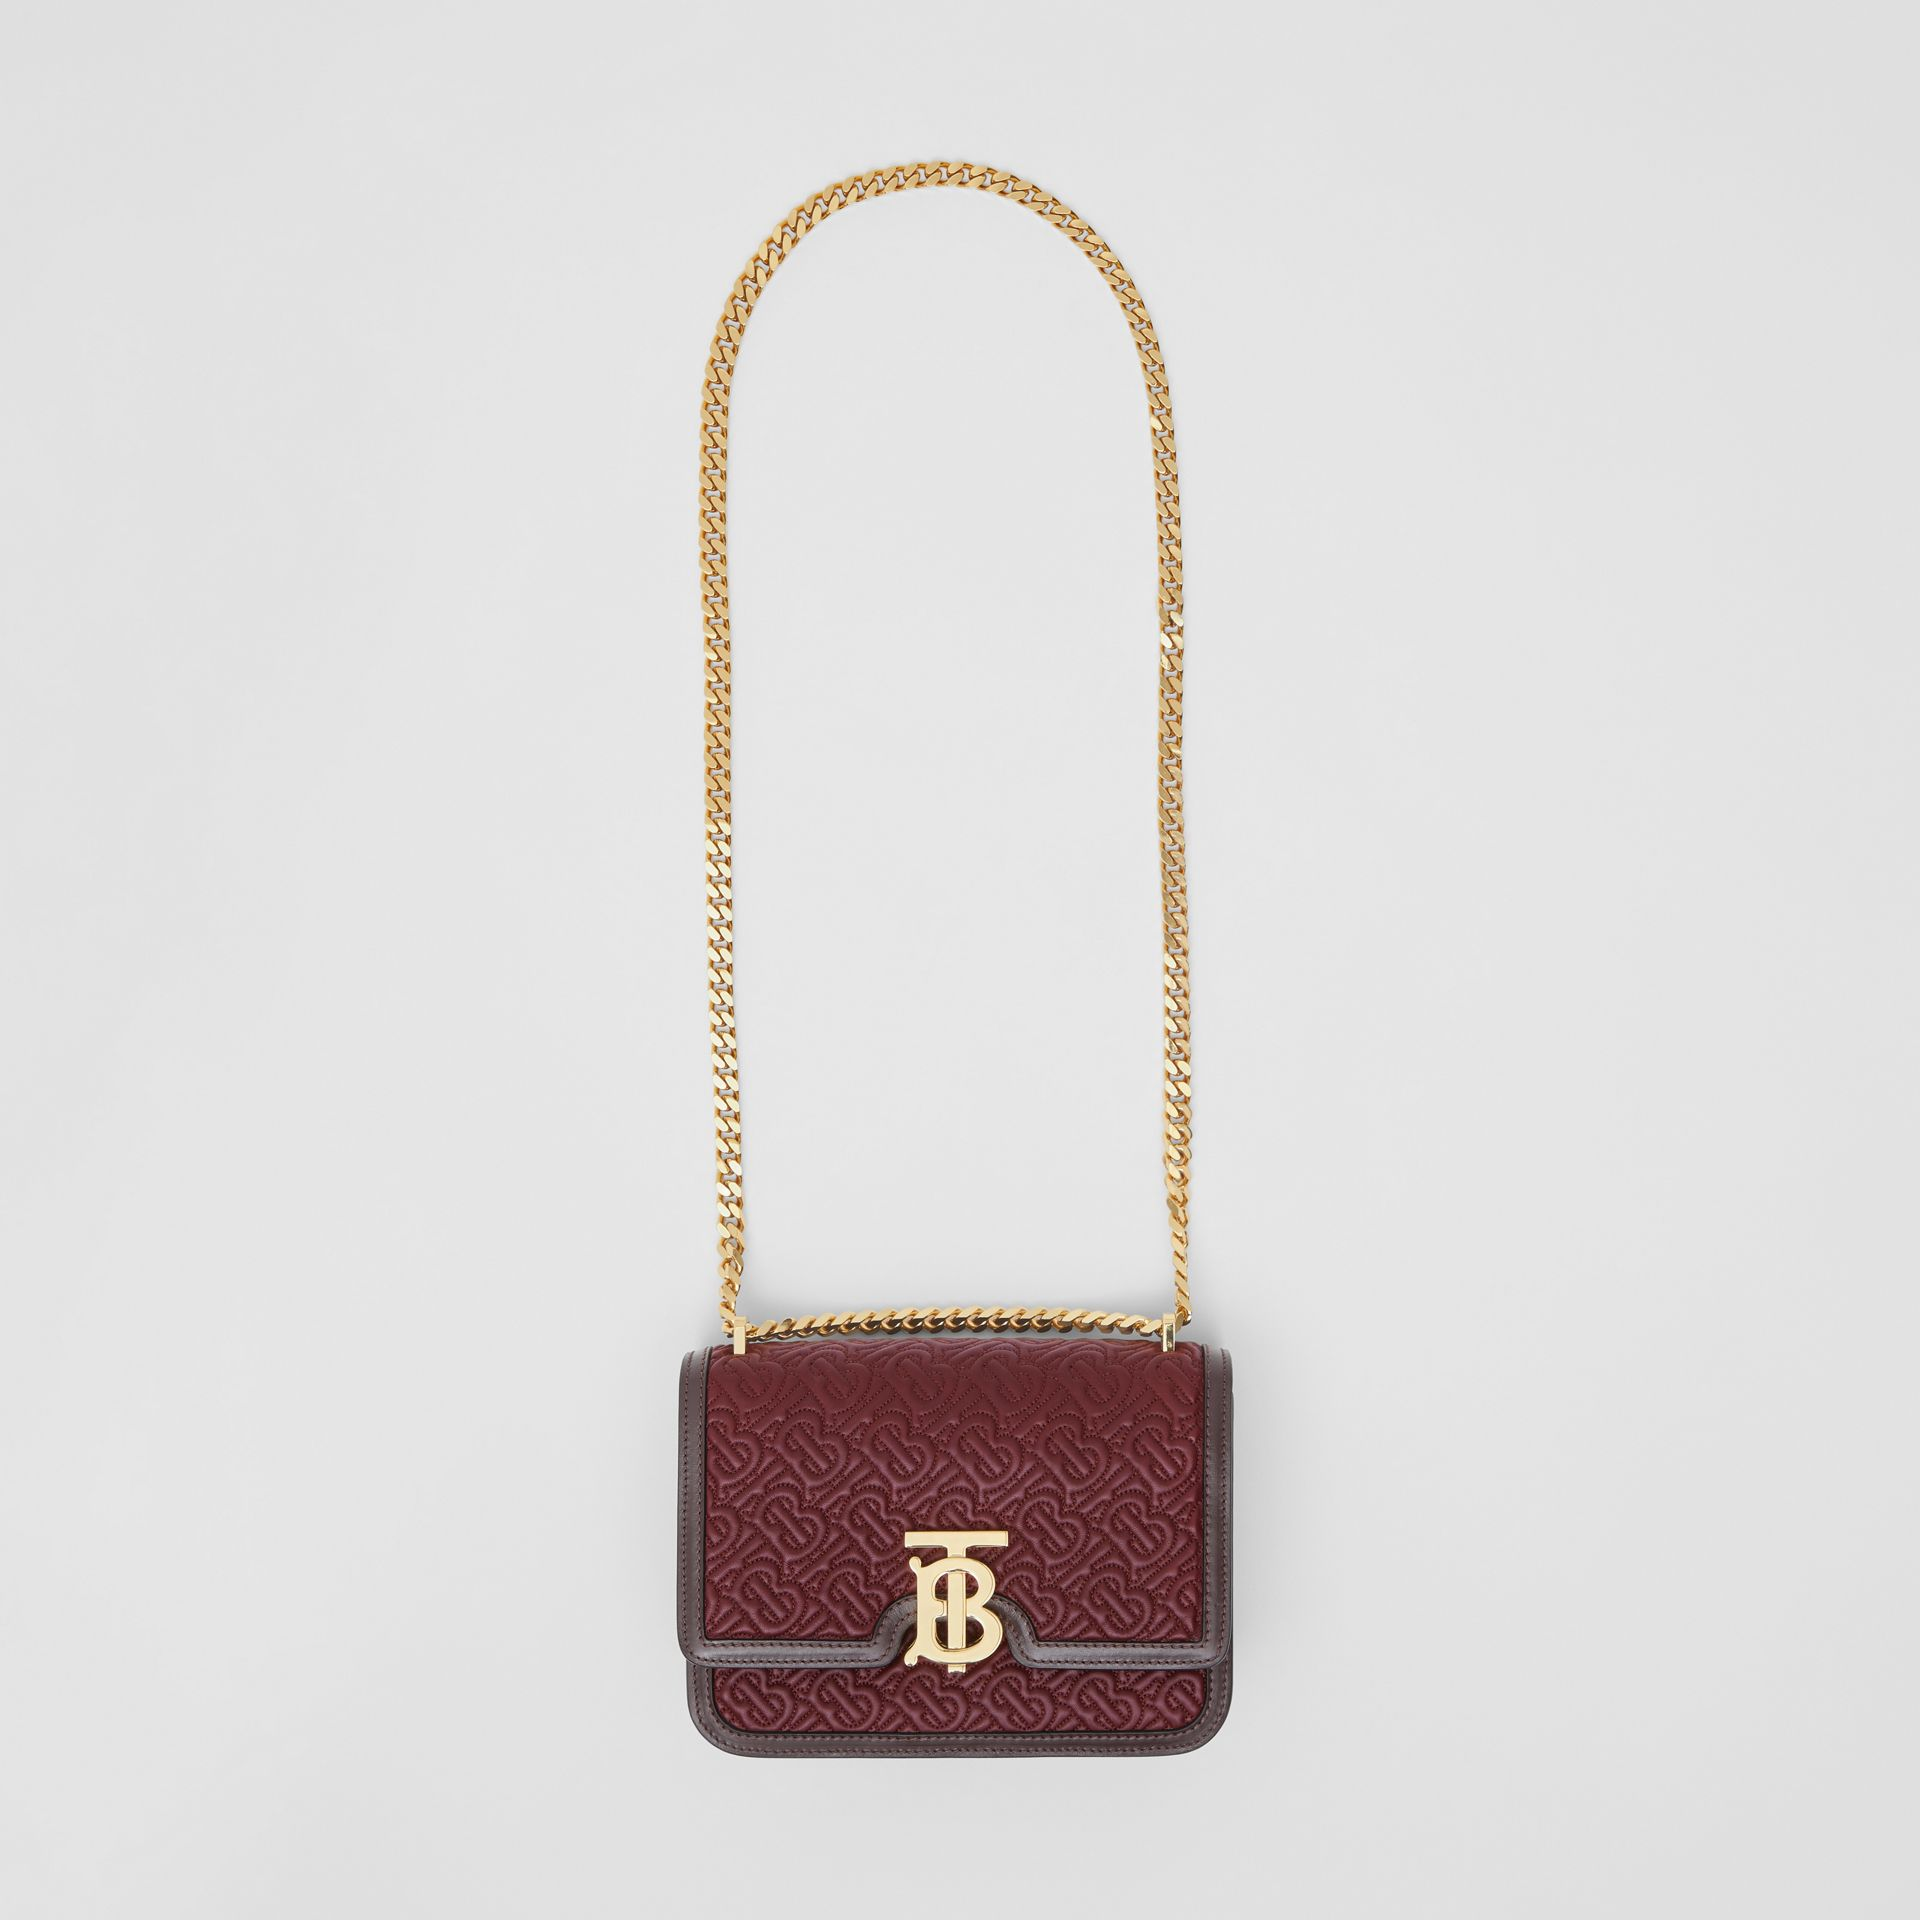 Small Quilted Monogram Lambskin TB Bag in Dark Burgundy - Women | Burberry - gallery image 3